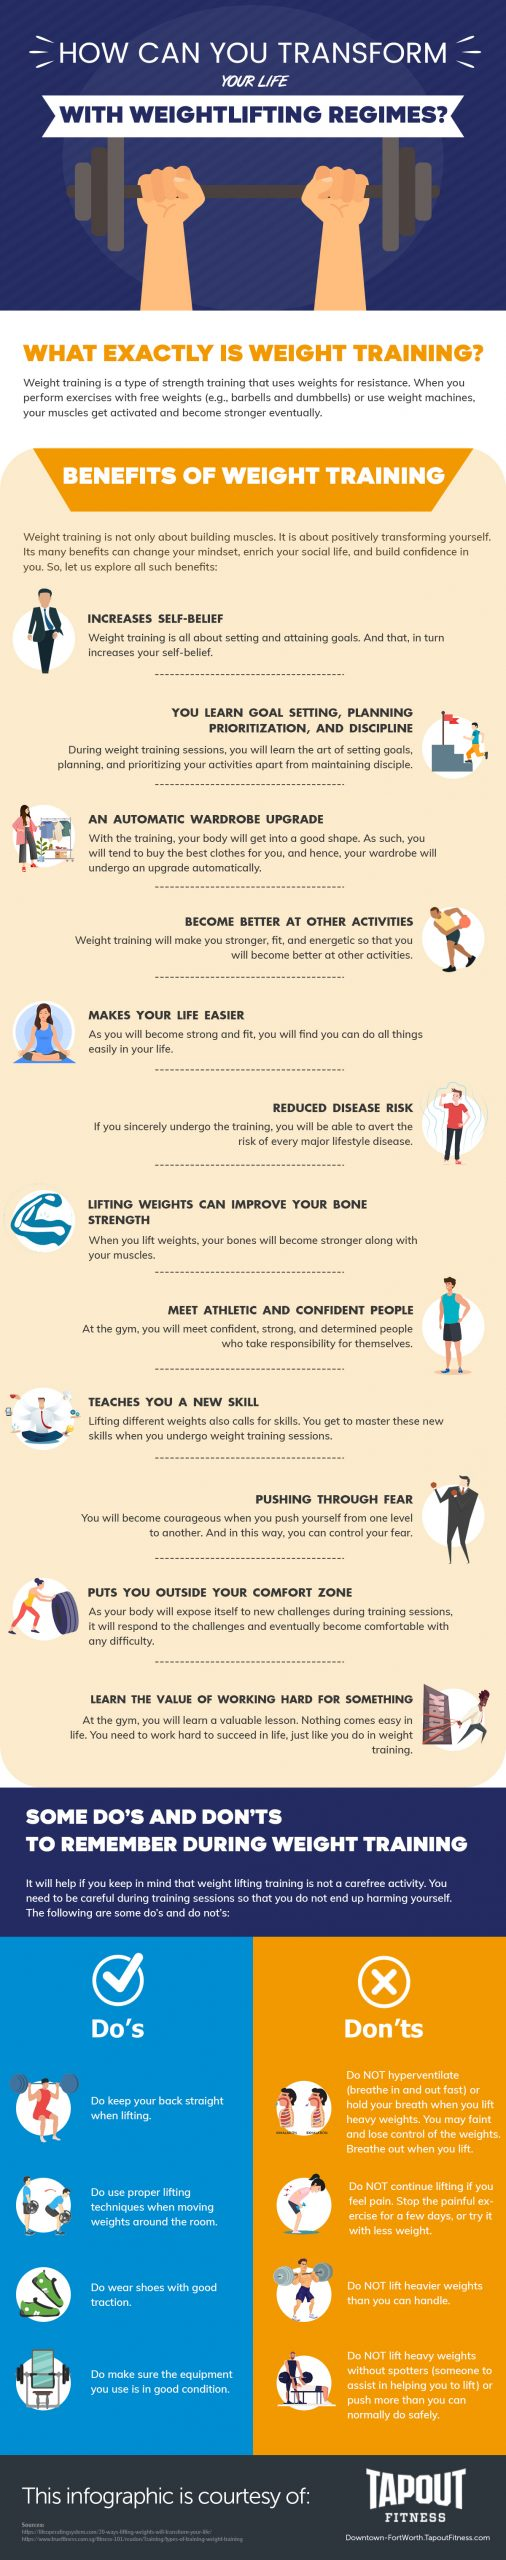 What You Should Not Do During Weight Training Sessions